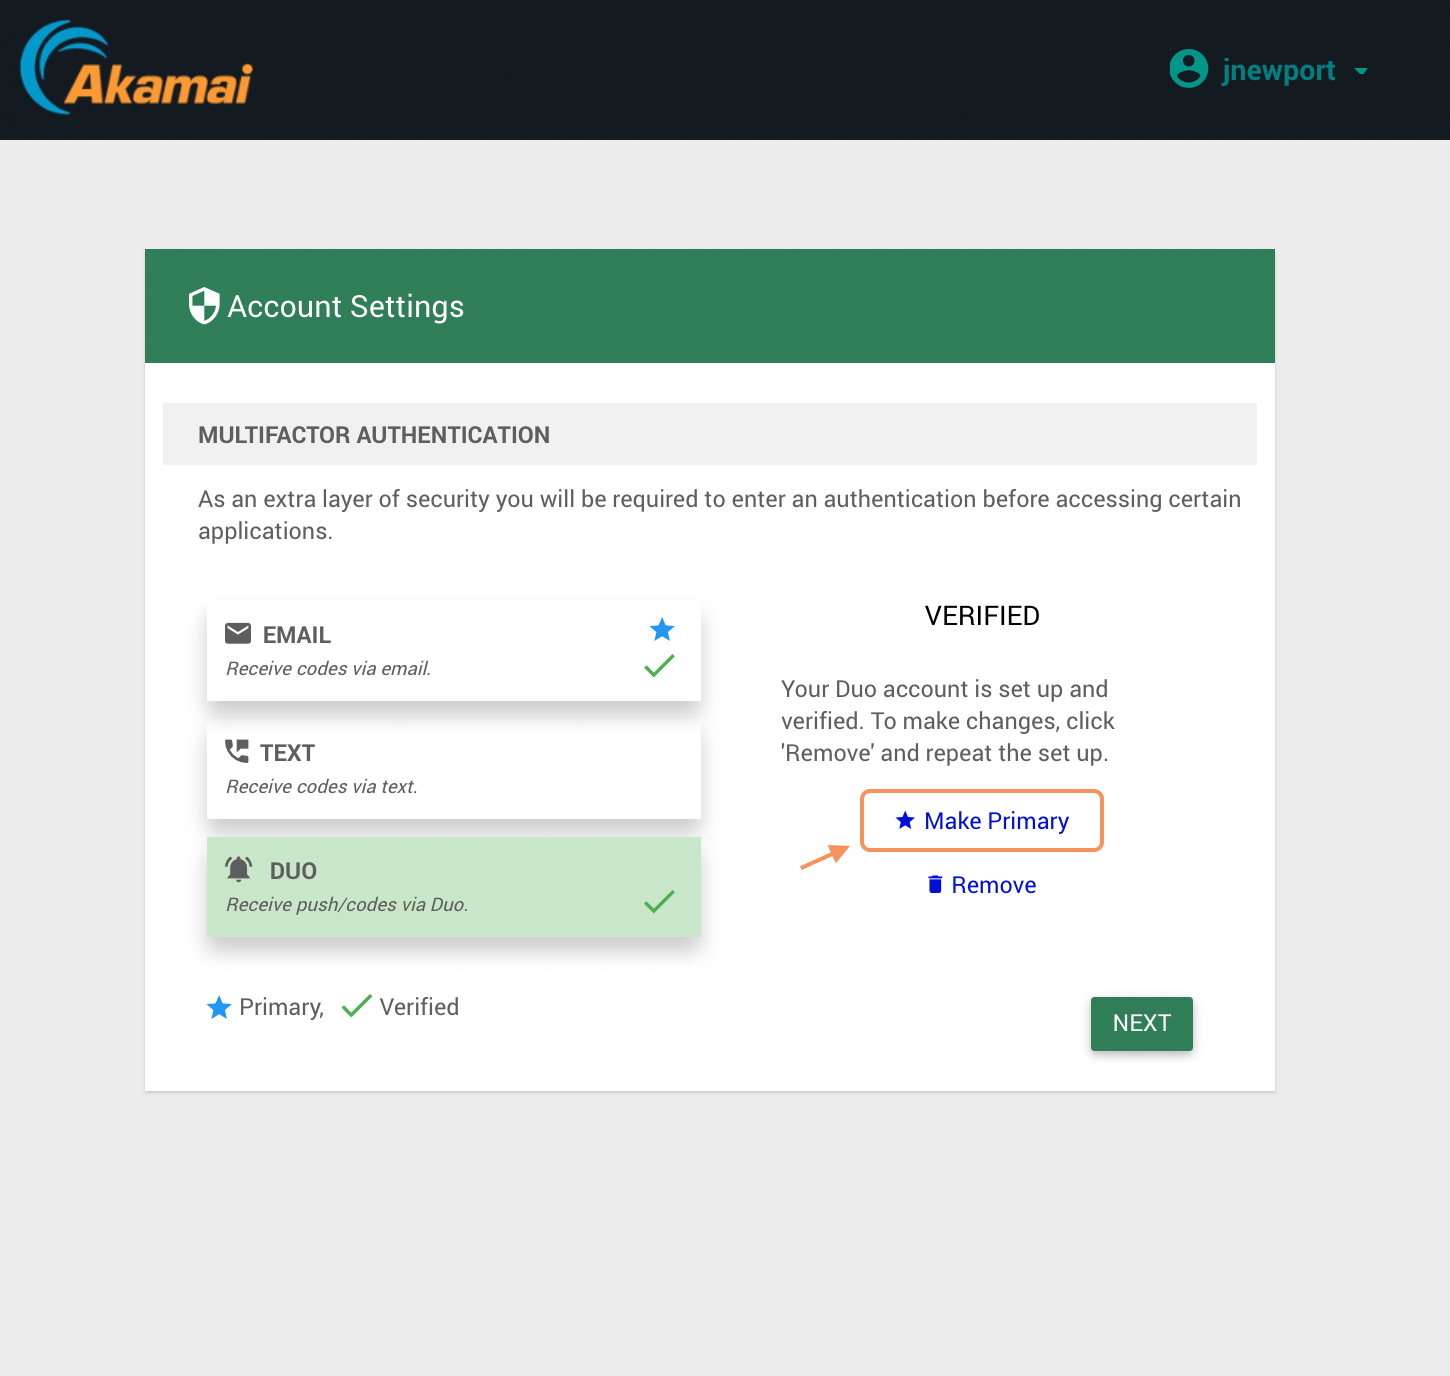 Akamai EAA User Make Duo MFA Primary